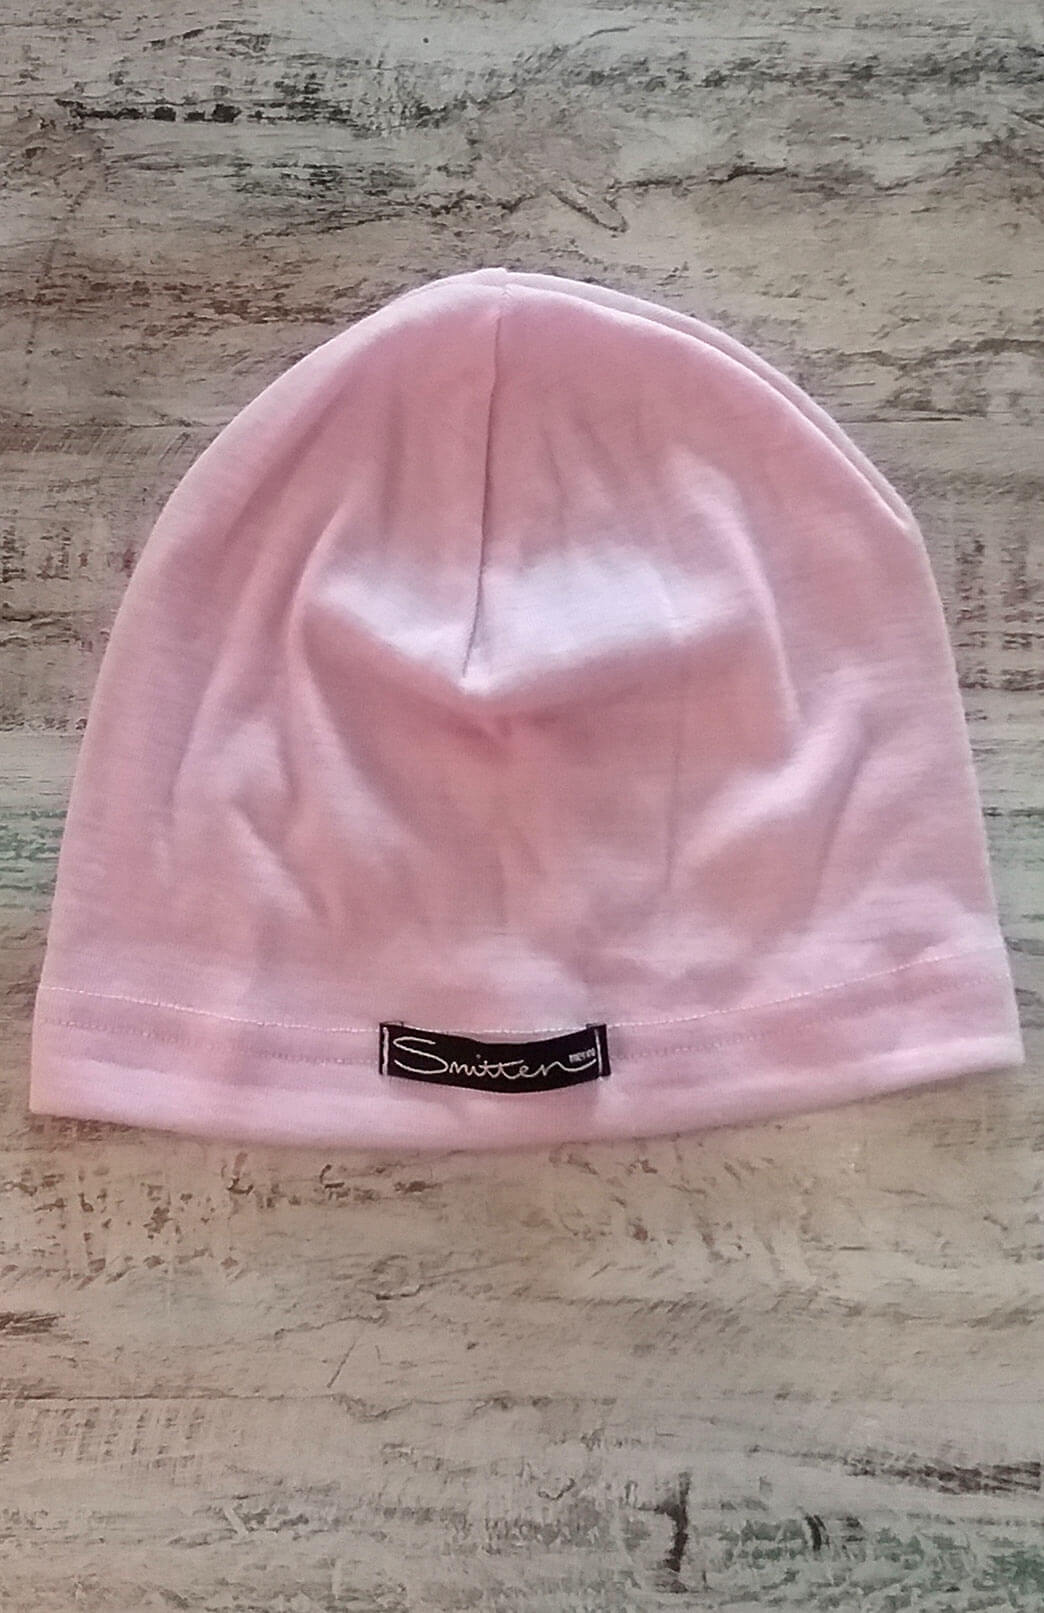 Mid-Weight Beanie (~200g) - Soft Pink Mid-Weight Merino Wool Unisex Beanie for everyday use - Smitten Merino Tasmania Australia